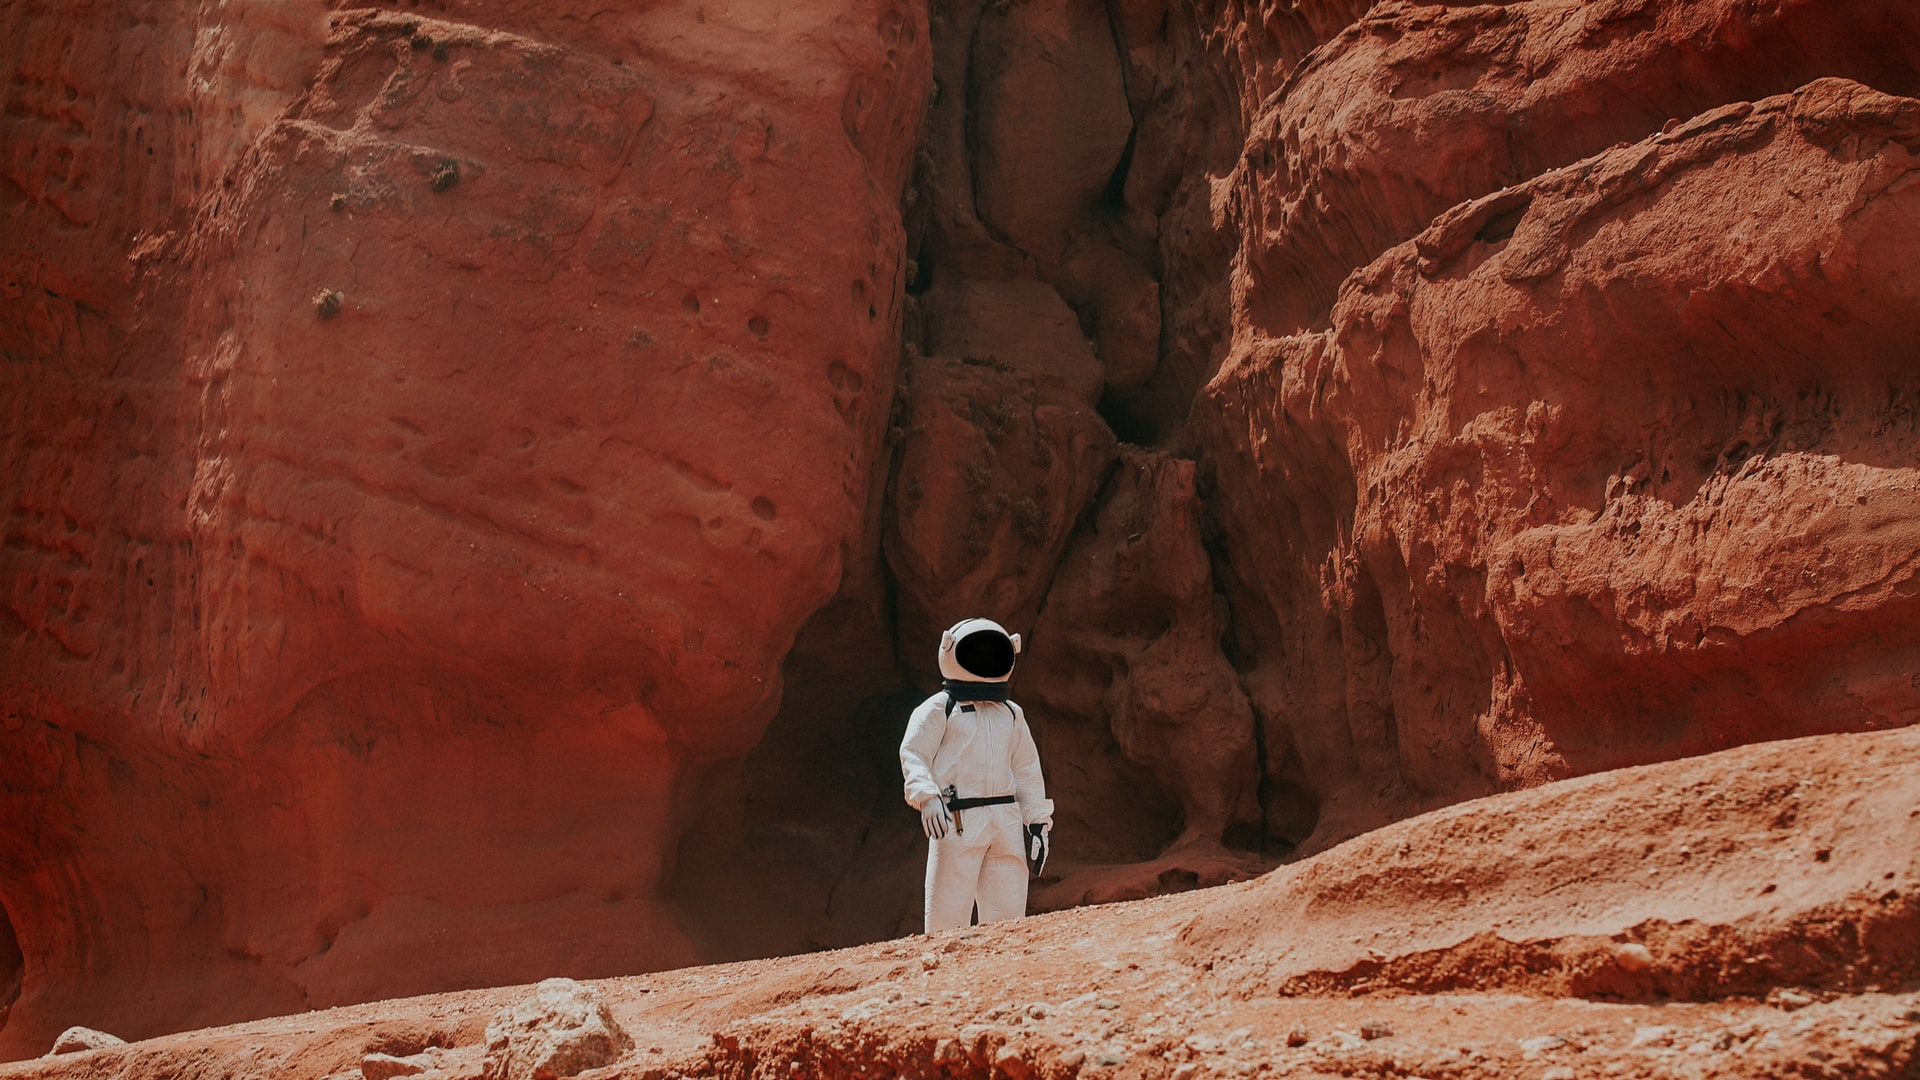 Dubai-based Institution Creates a VR Campus to Take Its Students to Mars